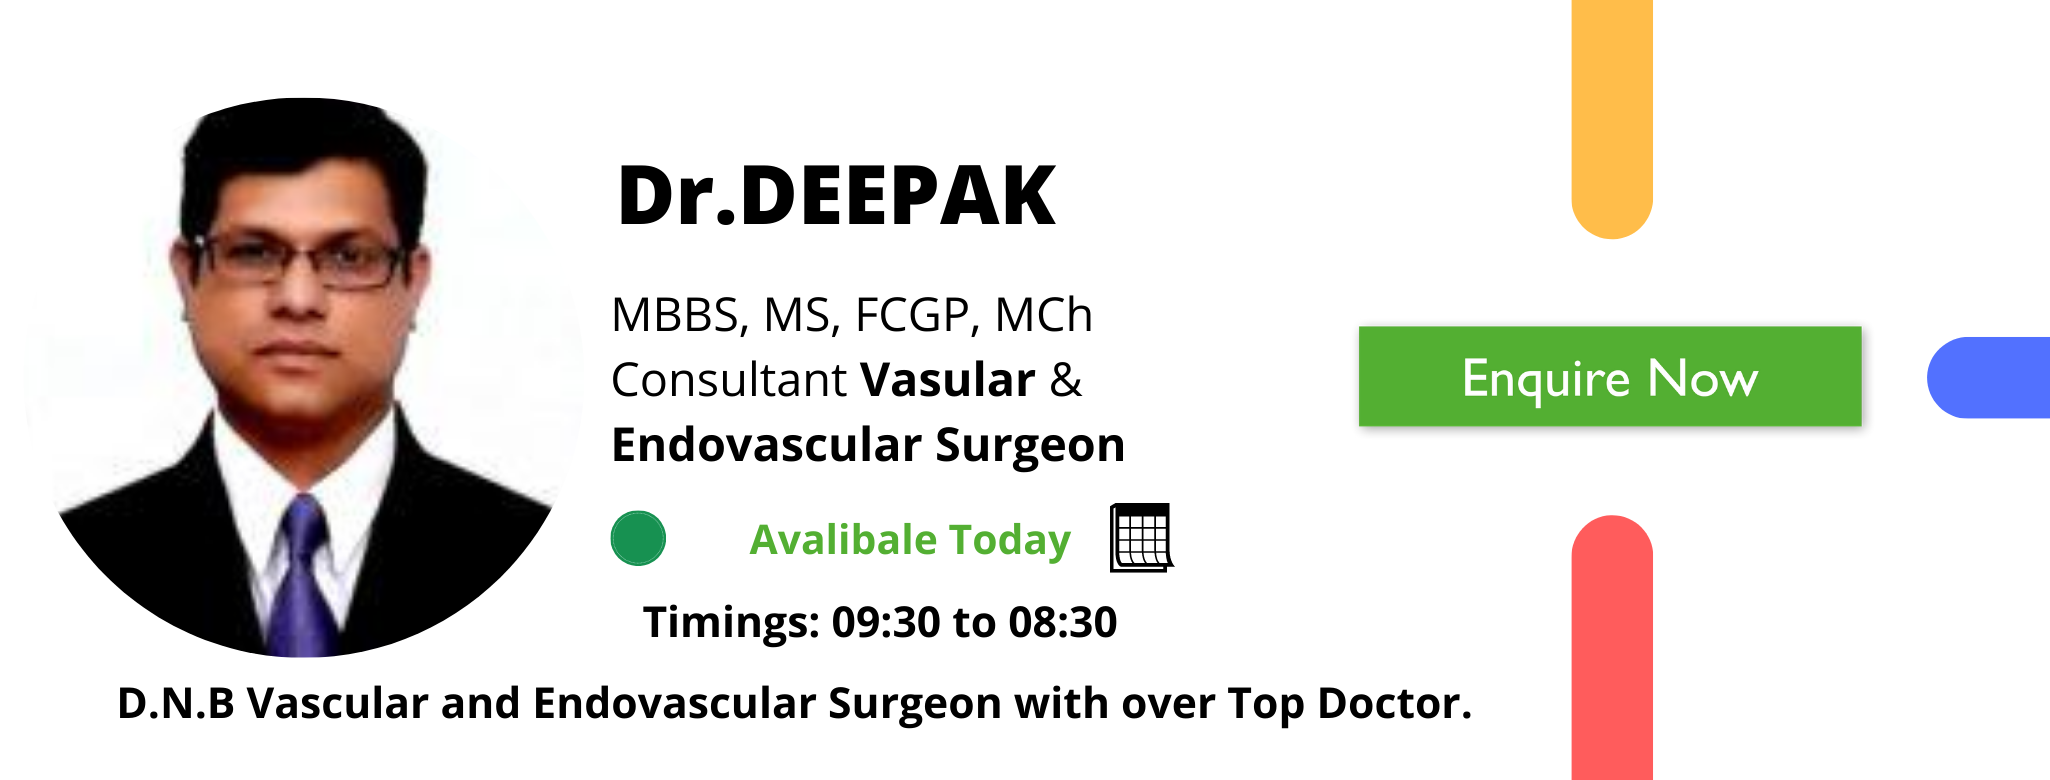 Dr.DEEPAK varicose veins treatment